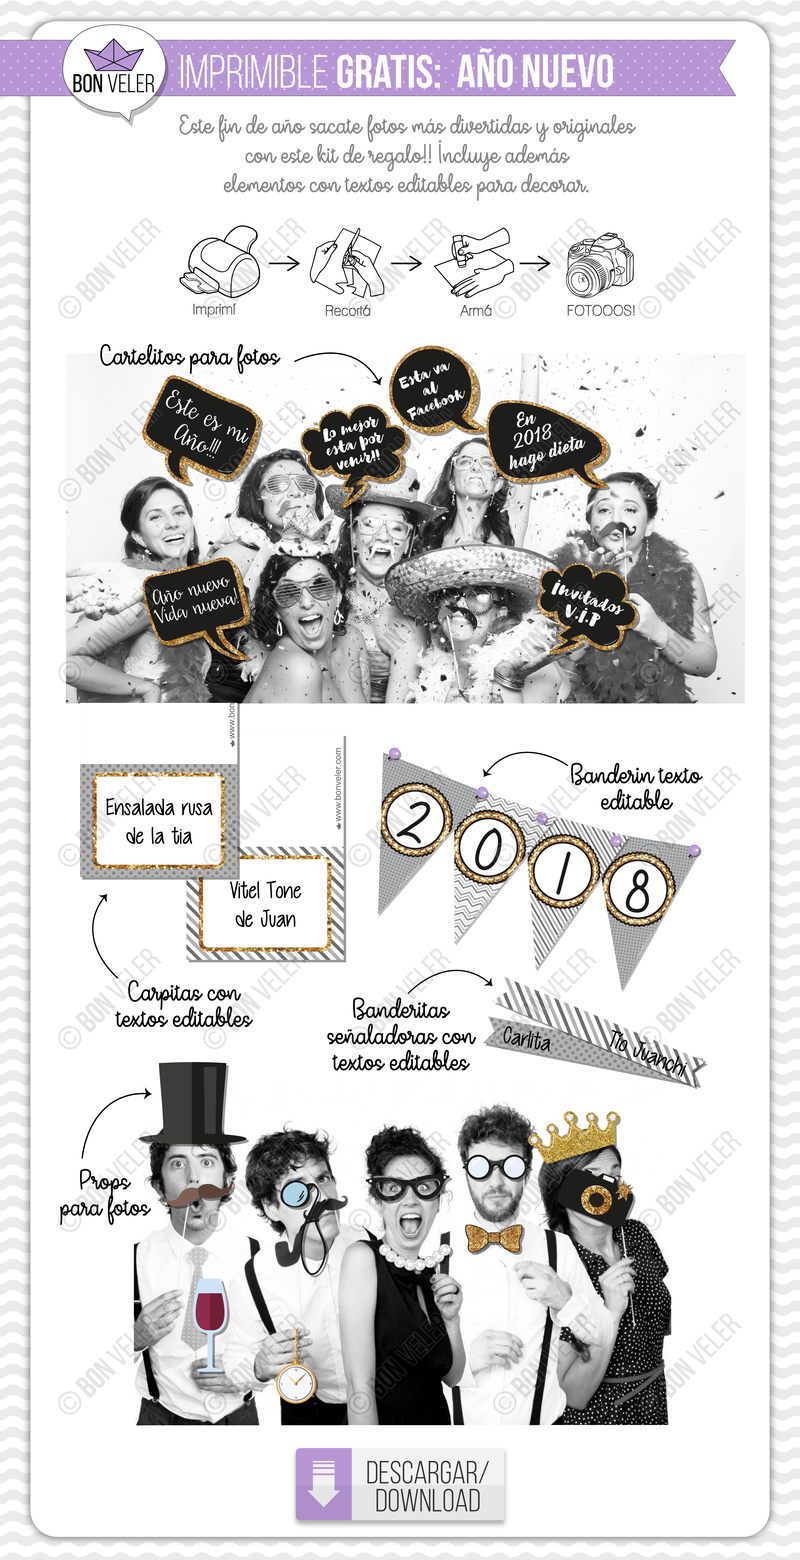 imprimible gratis props para fotos fin de año photo booth